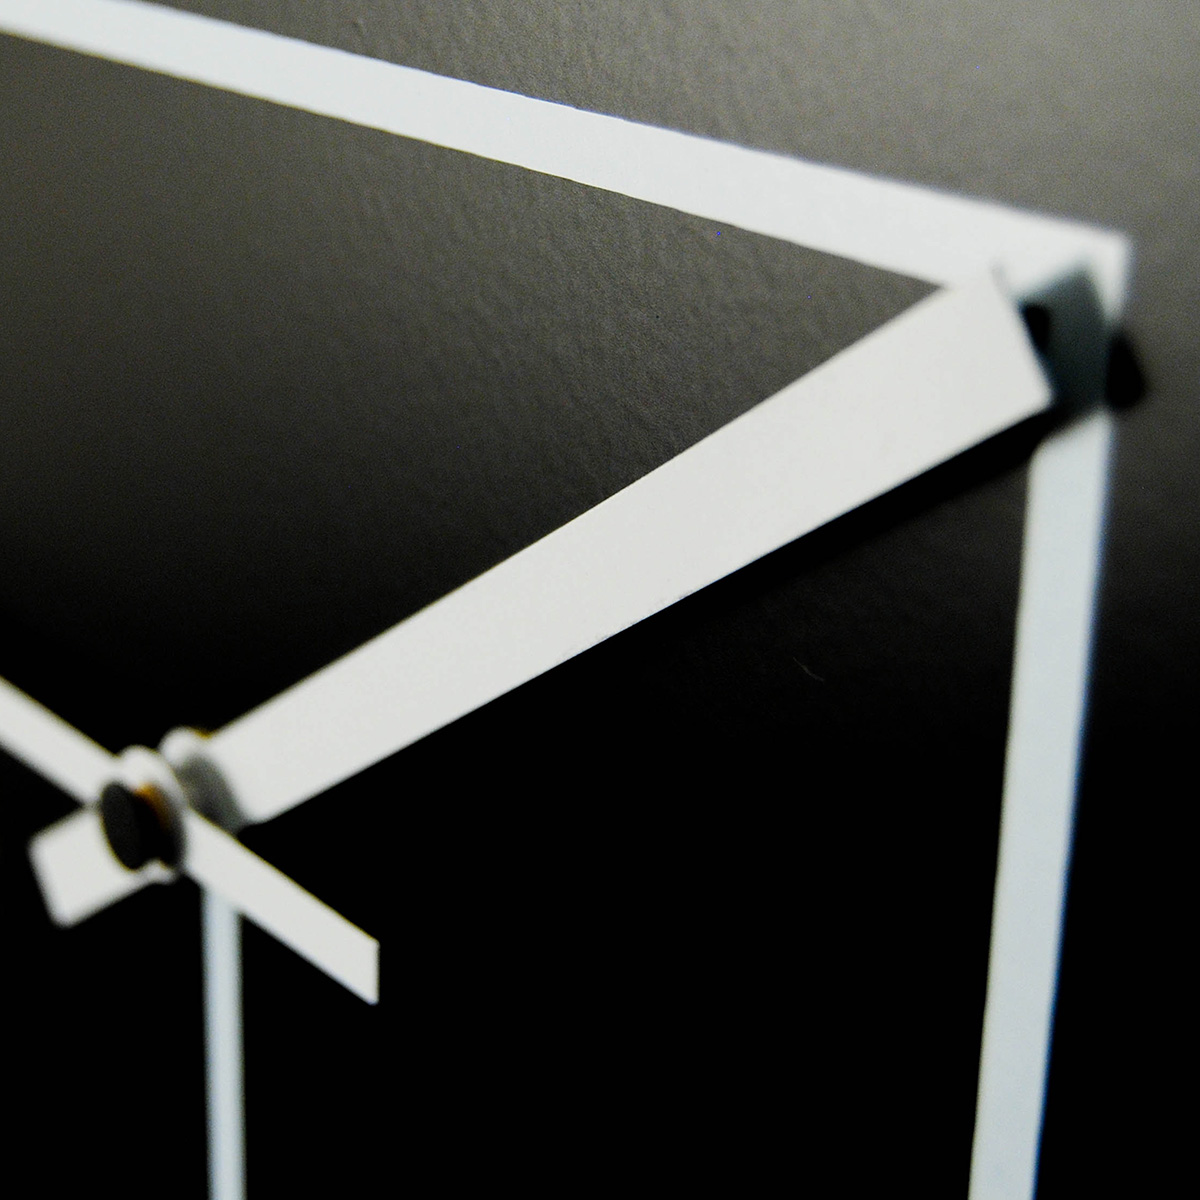 oroloigo-parete-design-wall-clock-detail-cube